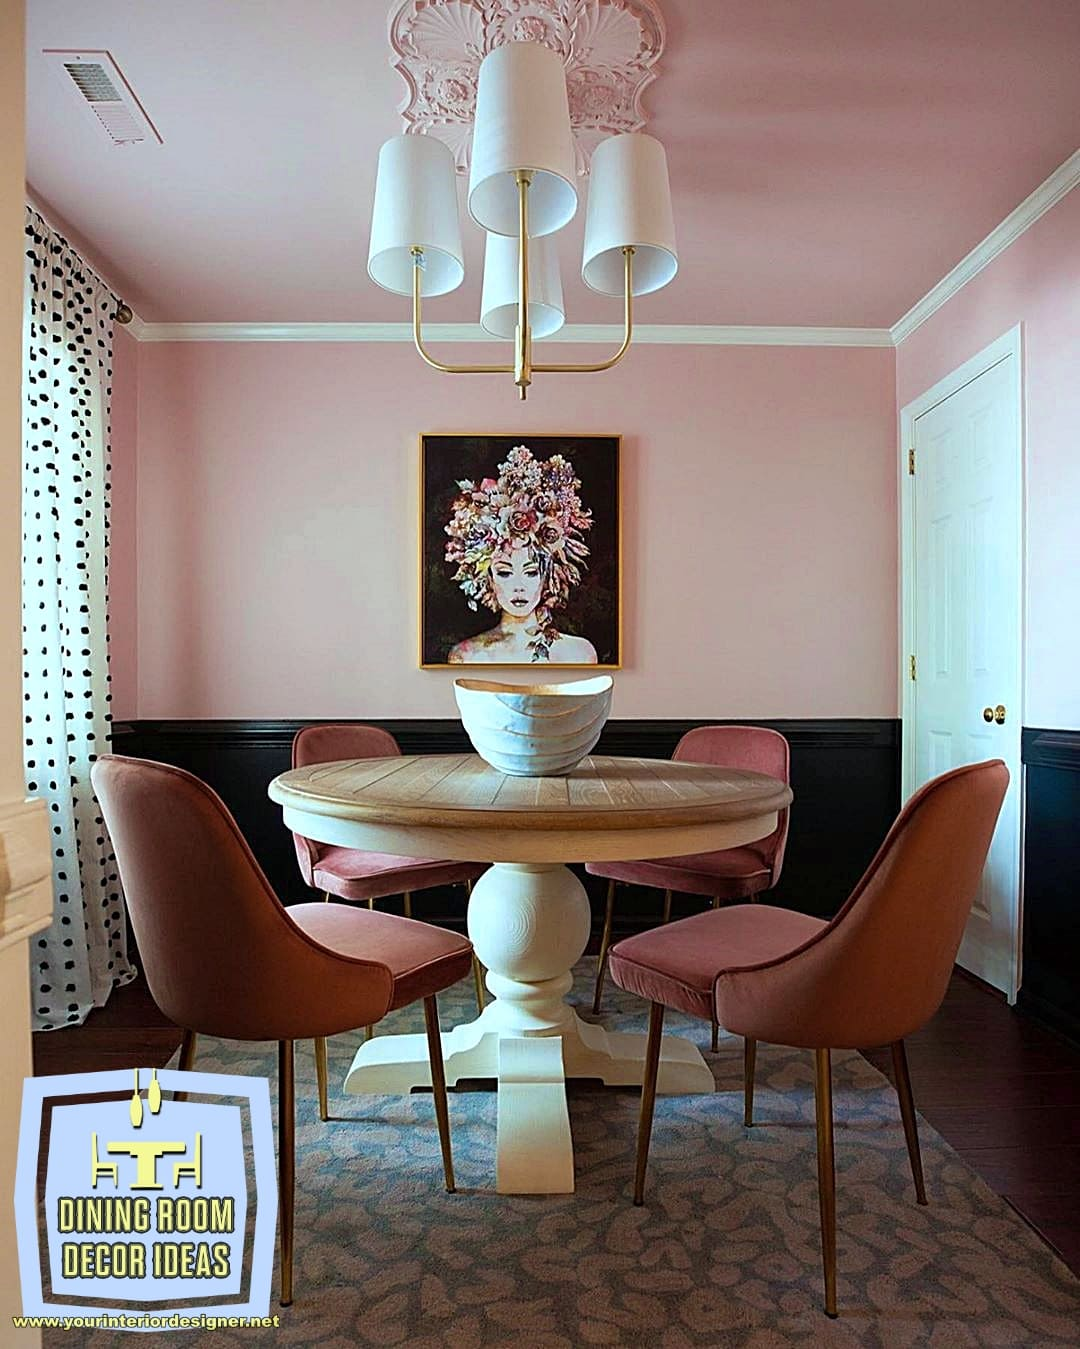 dining room decor elegant, dining room decor ideas, dining room decor modern, dining room lighting, dining room table, dining room wall decor, dining room ideas, dining room design, dining room decor, dining room decor on a budget